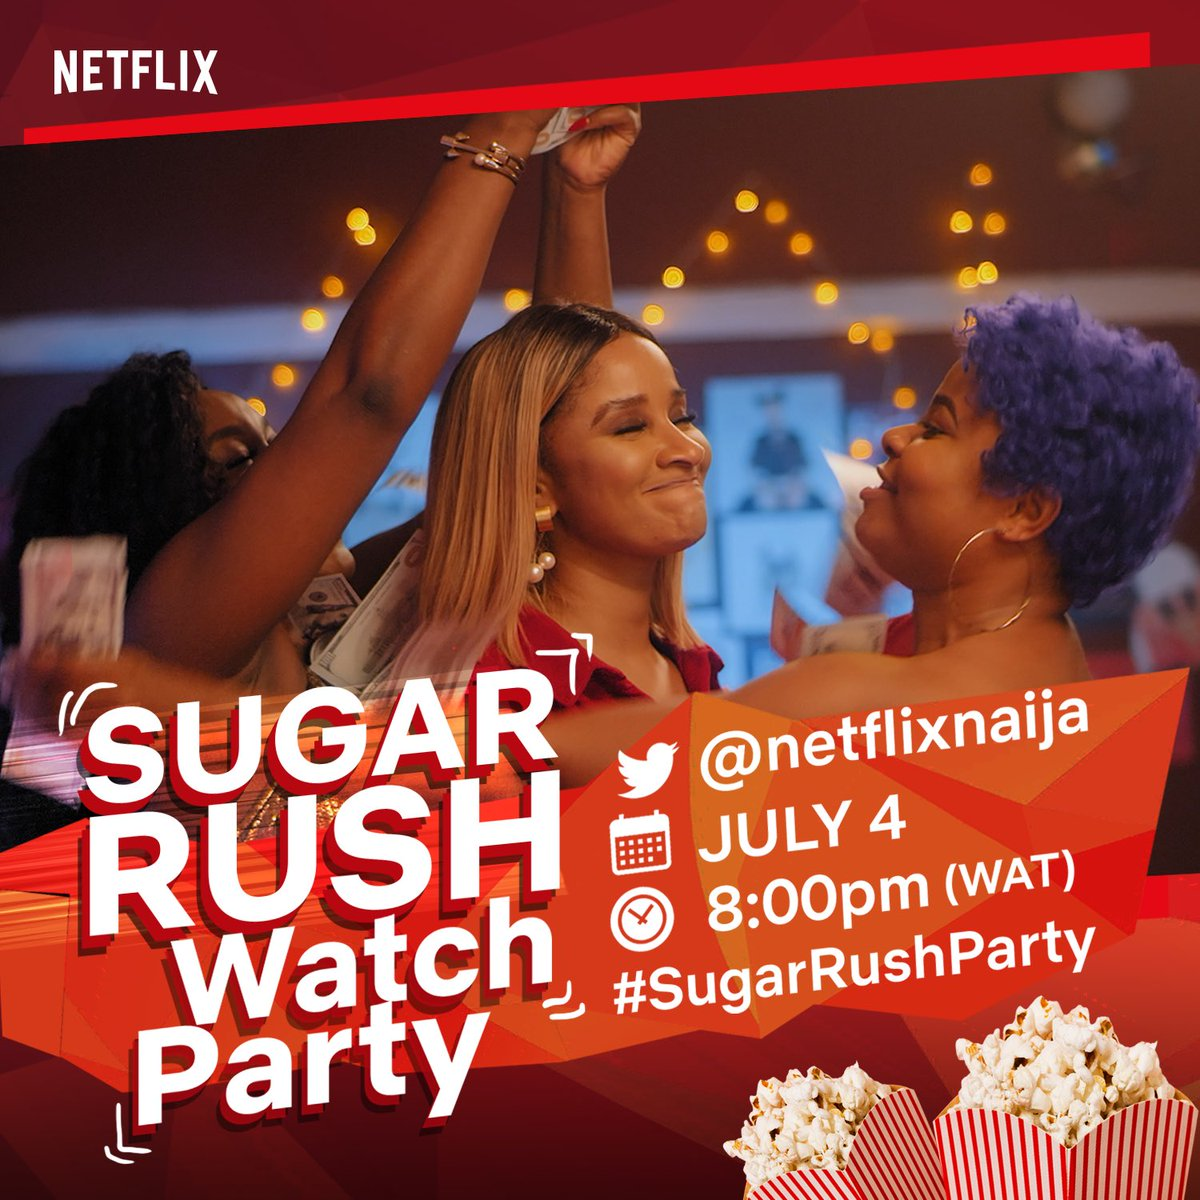 Sugar Rush fans, get in here! We're hosting a Twitter watch party tonight at 8pm WAT for your fav movie 💃🏾🎉🥳 Join us for the fun and laughs! Tweet along using #SugarRushParty Tell everyone cos it's going to be lit! 🔥